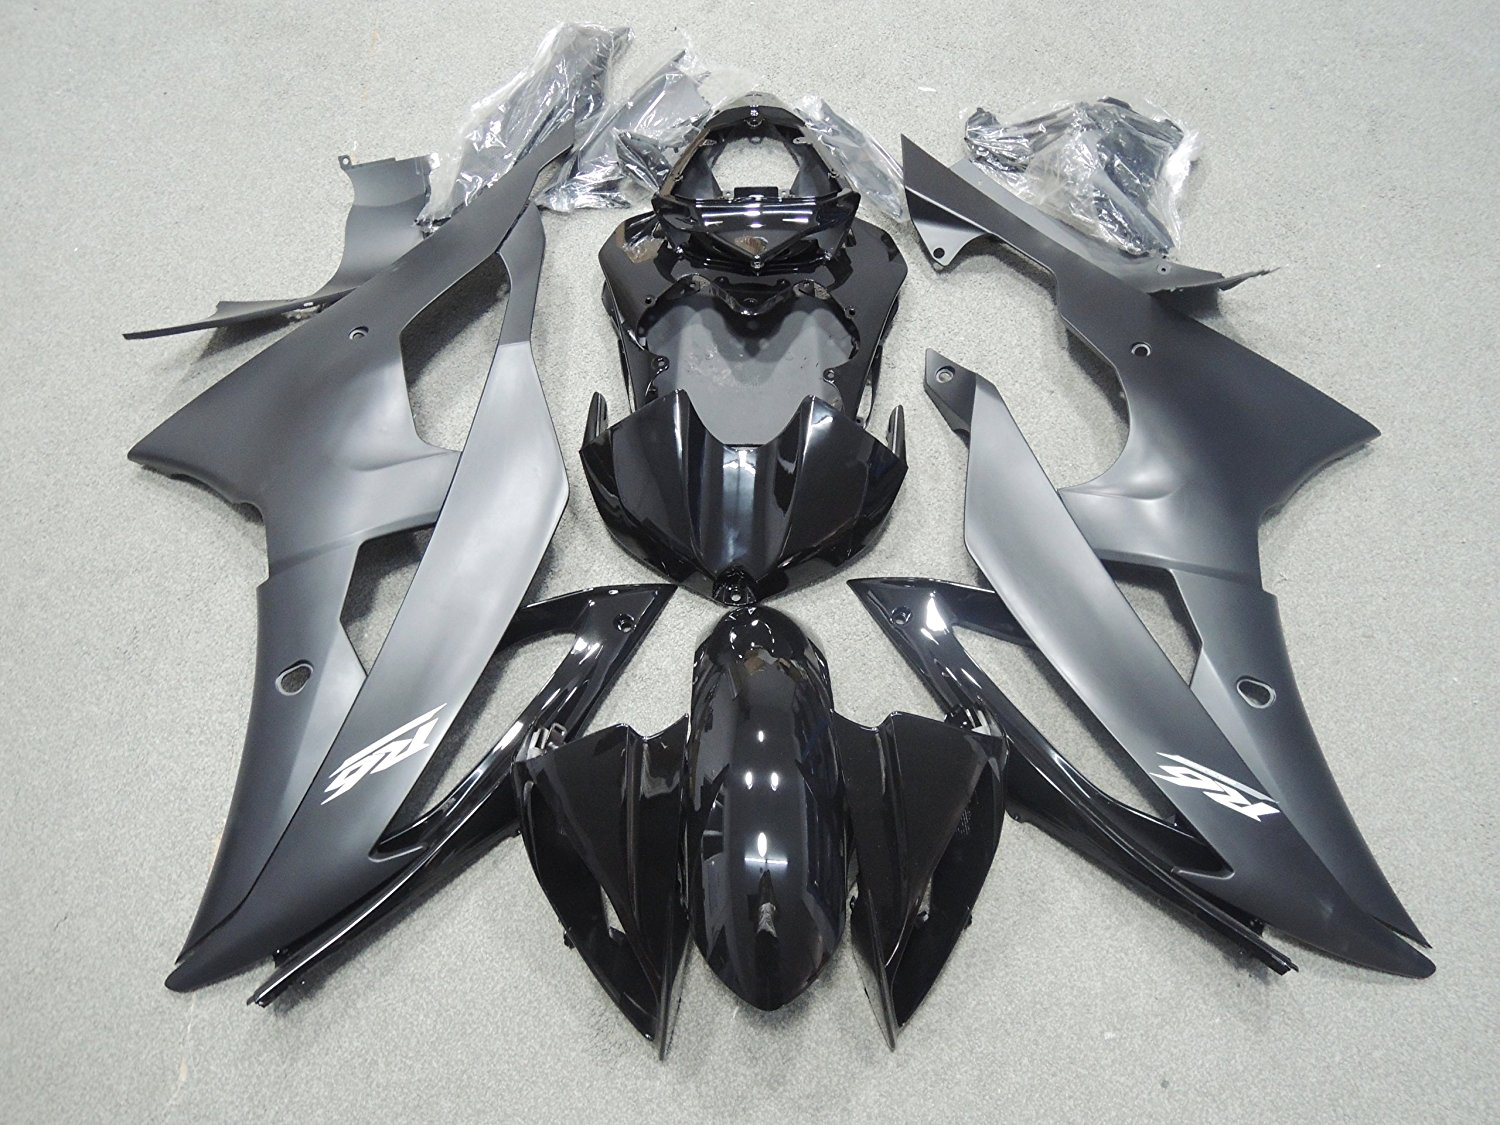 Motorcycle Bodywork Fairing Kit For Yamaha YZF R6 YZFR6 R600 YZF600 YZF-R6 2008 2009 2010 2011 2012 2013 Injection Molding Cowl for yamaha yzfr6 08 14 2009 2010 2011 2012 yzf 600 r6 2008 2013 2014 yzf600r 08 14 inject abs plastic motorcycle fairing kit 25